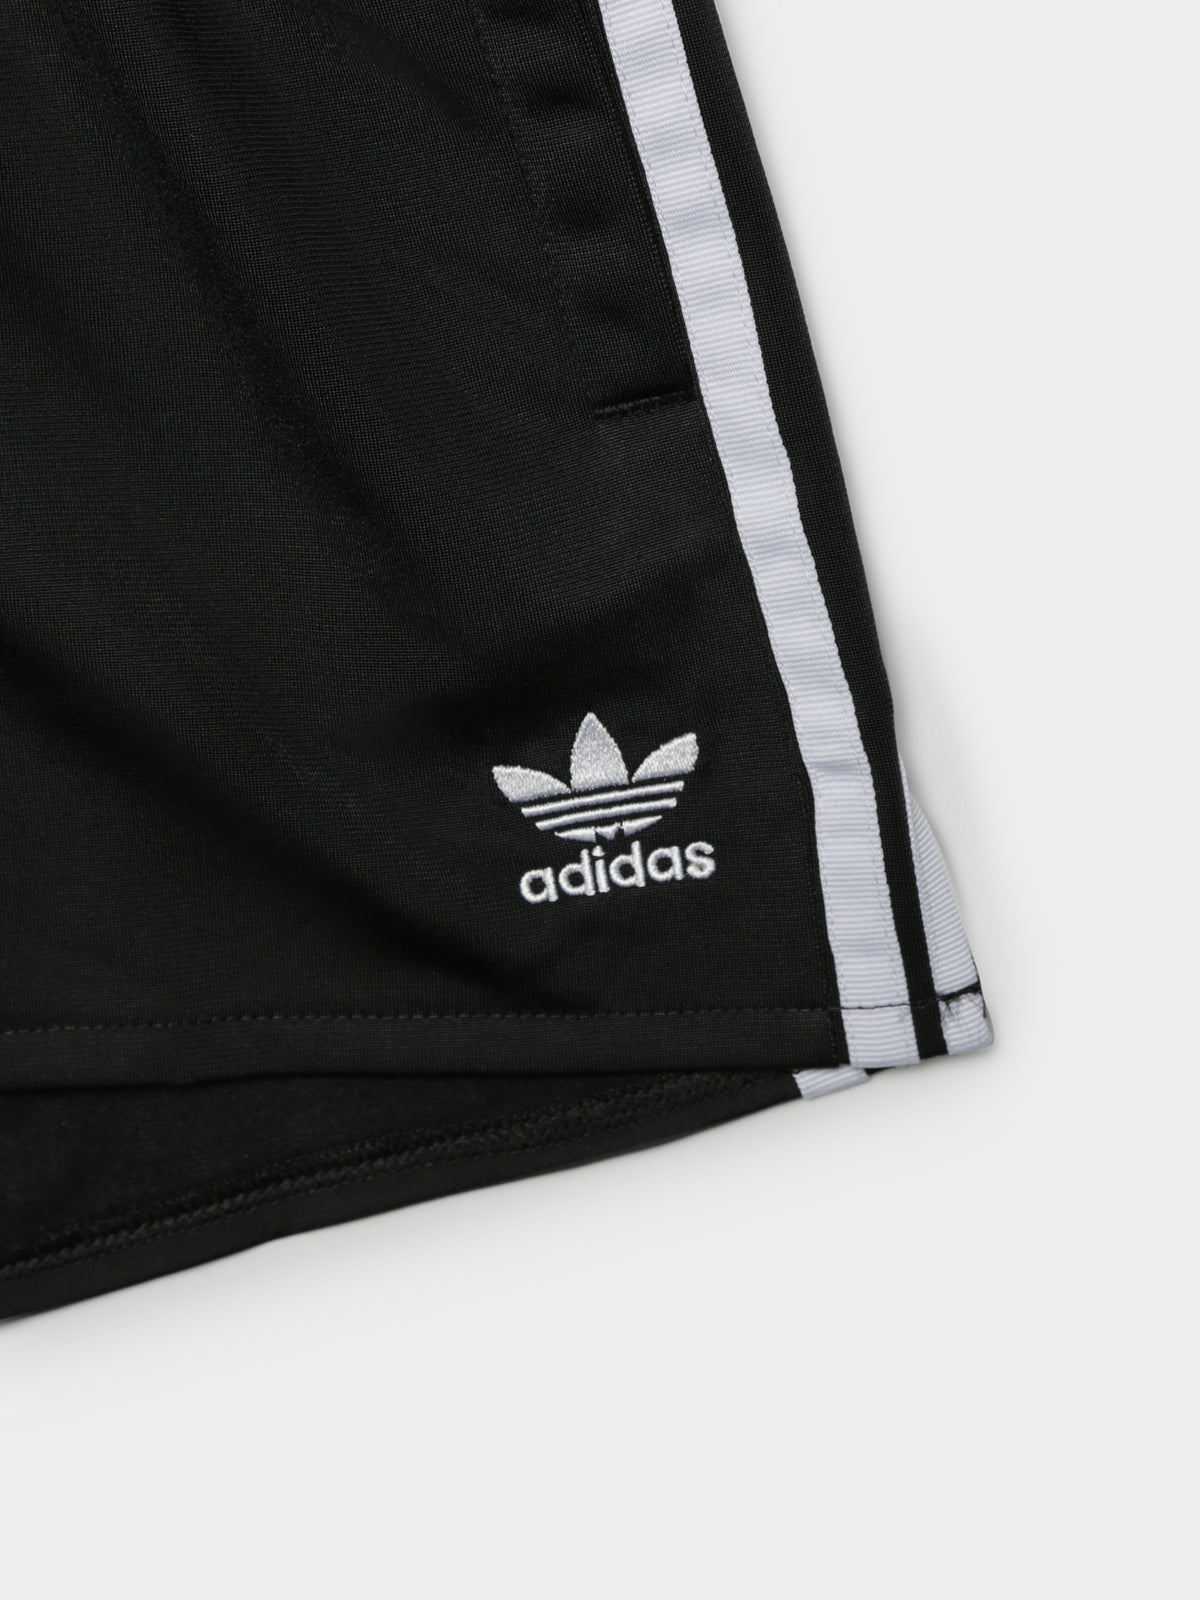 3 Stripes Shorts in Black